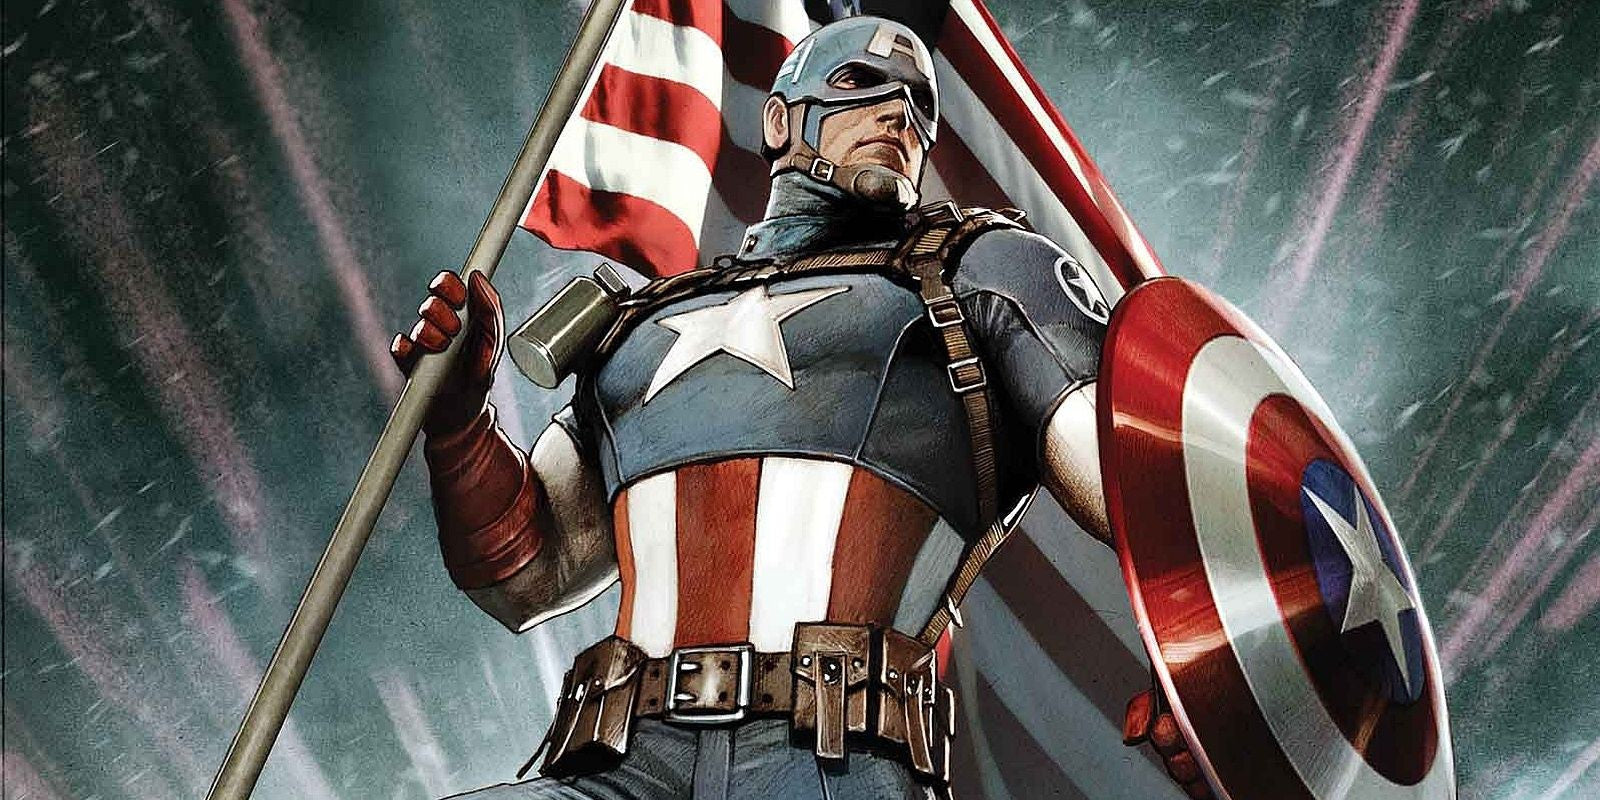 Captain America Stories that You Need to Read